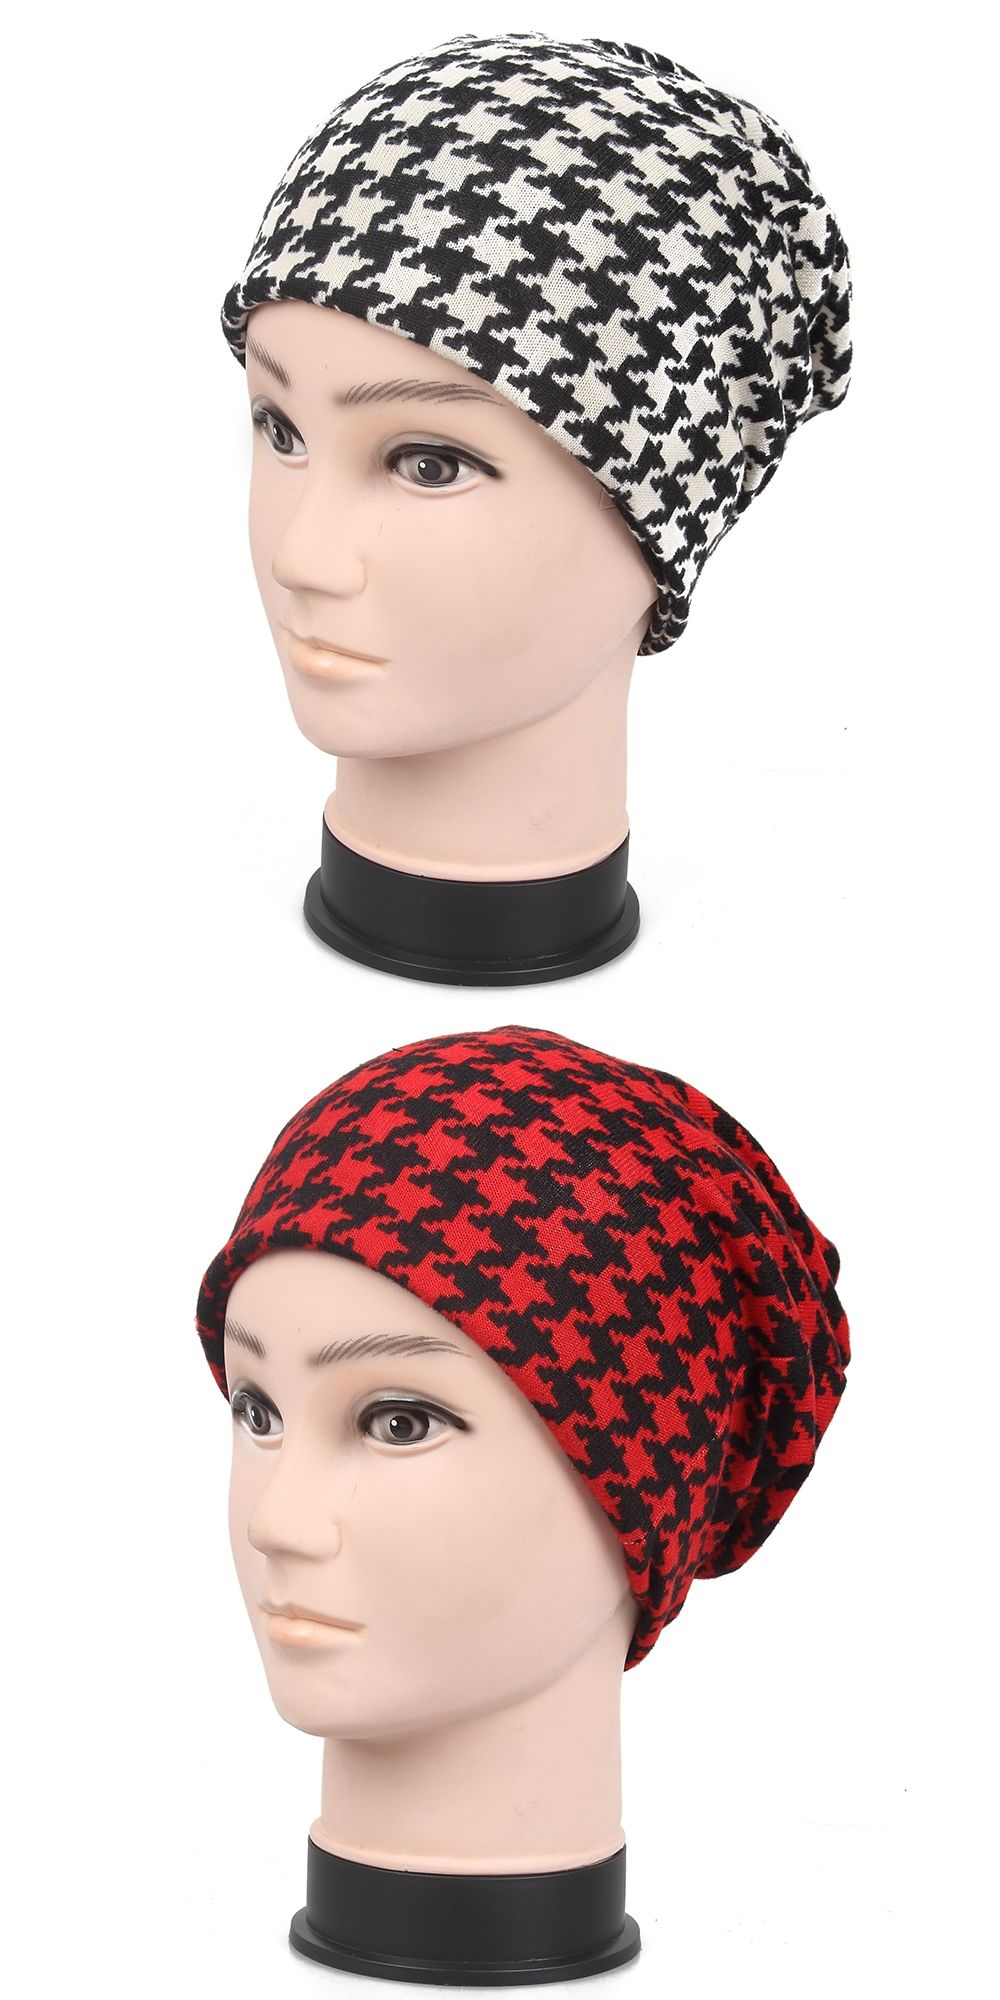 Free Shipping 2017 New Black White Red Houndstooth Beanies Hats For Mens  Womens 62462776e3a9